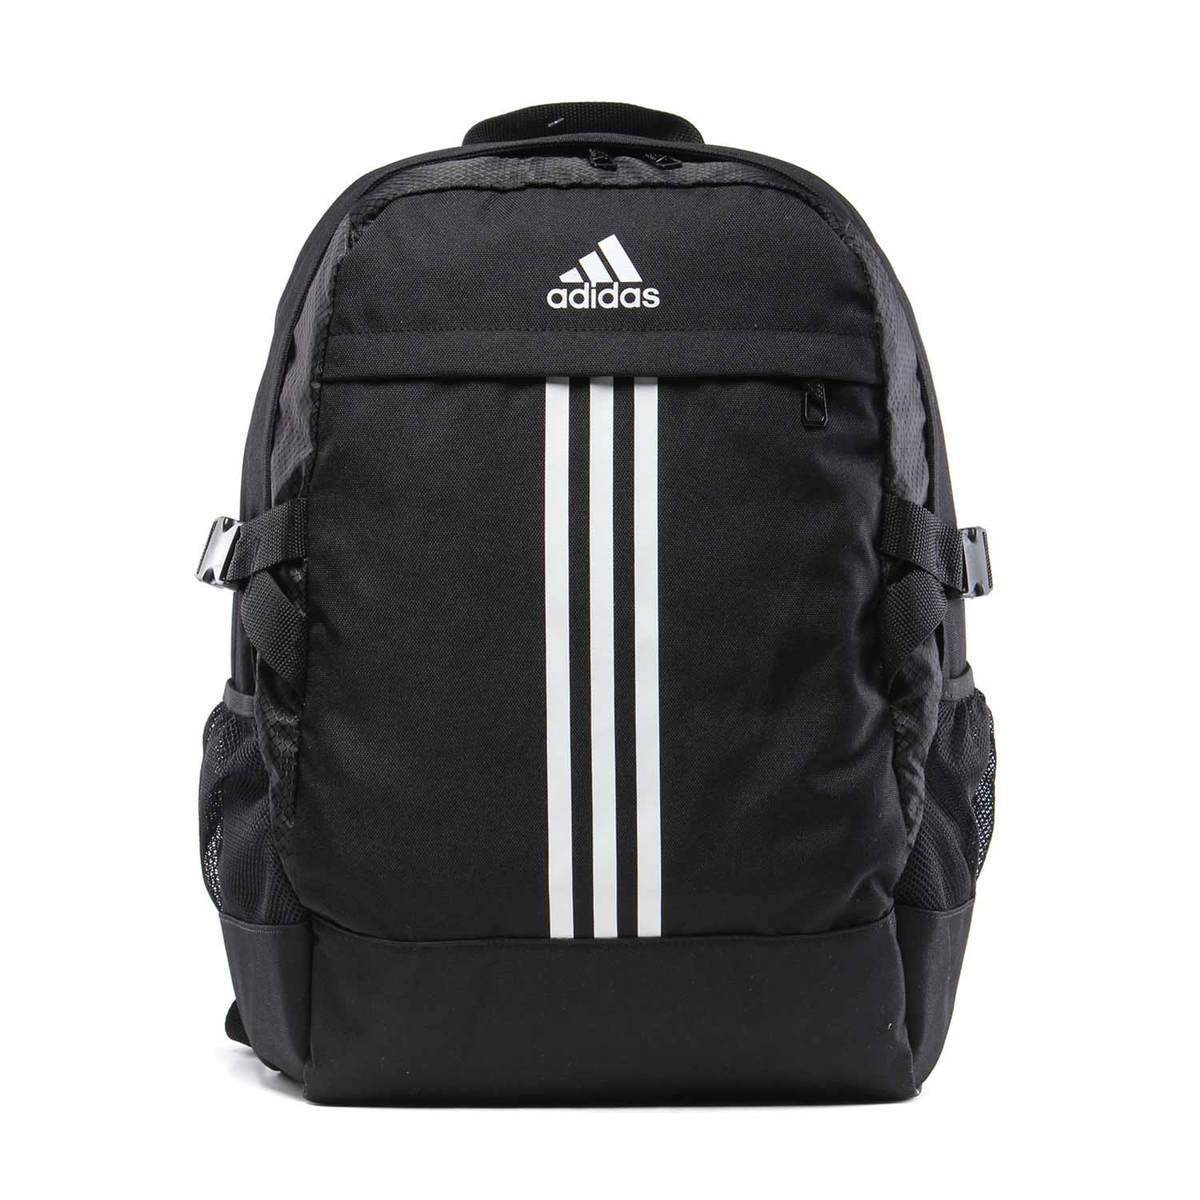 usd 167 adidas backpack 2017 new man bag sports